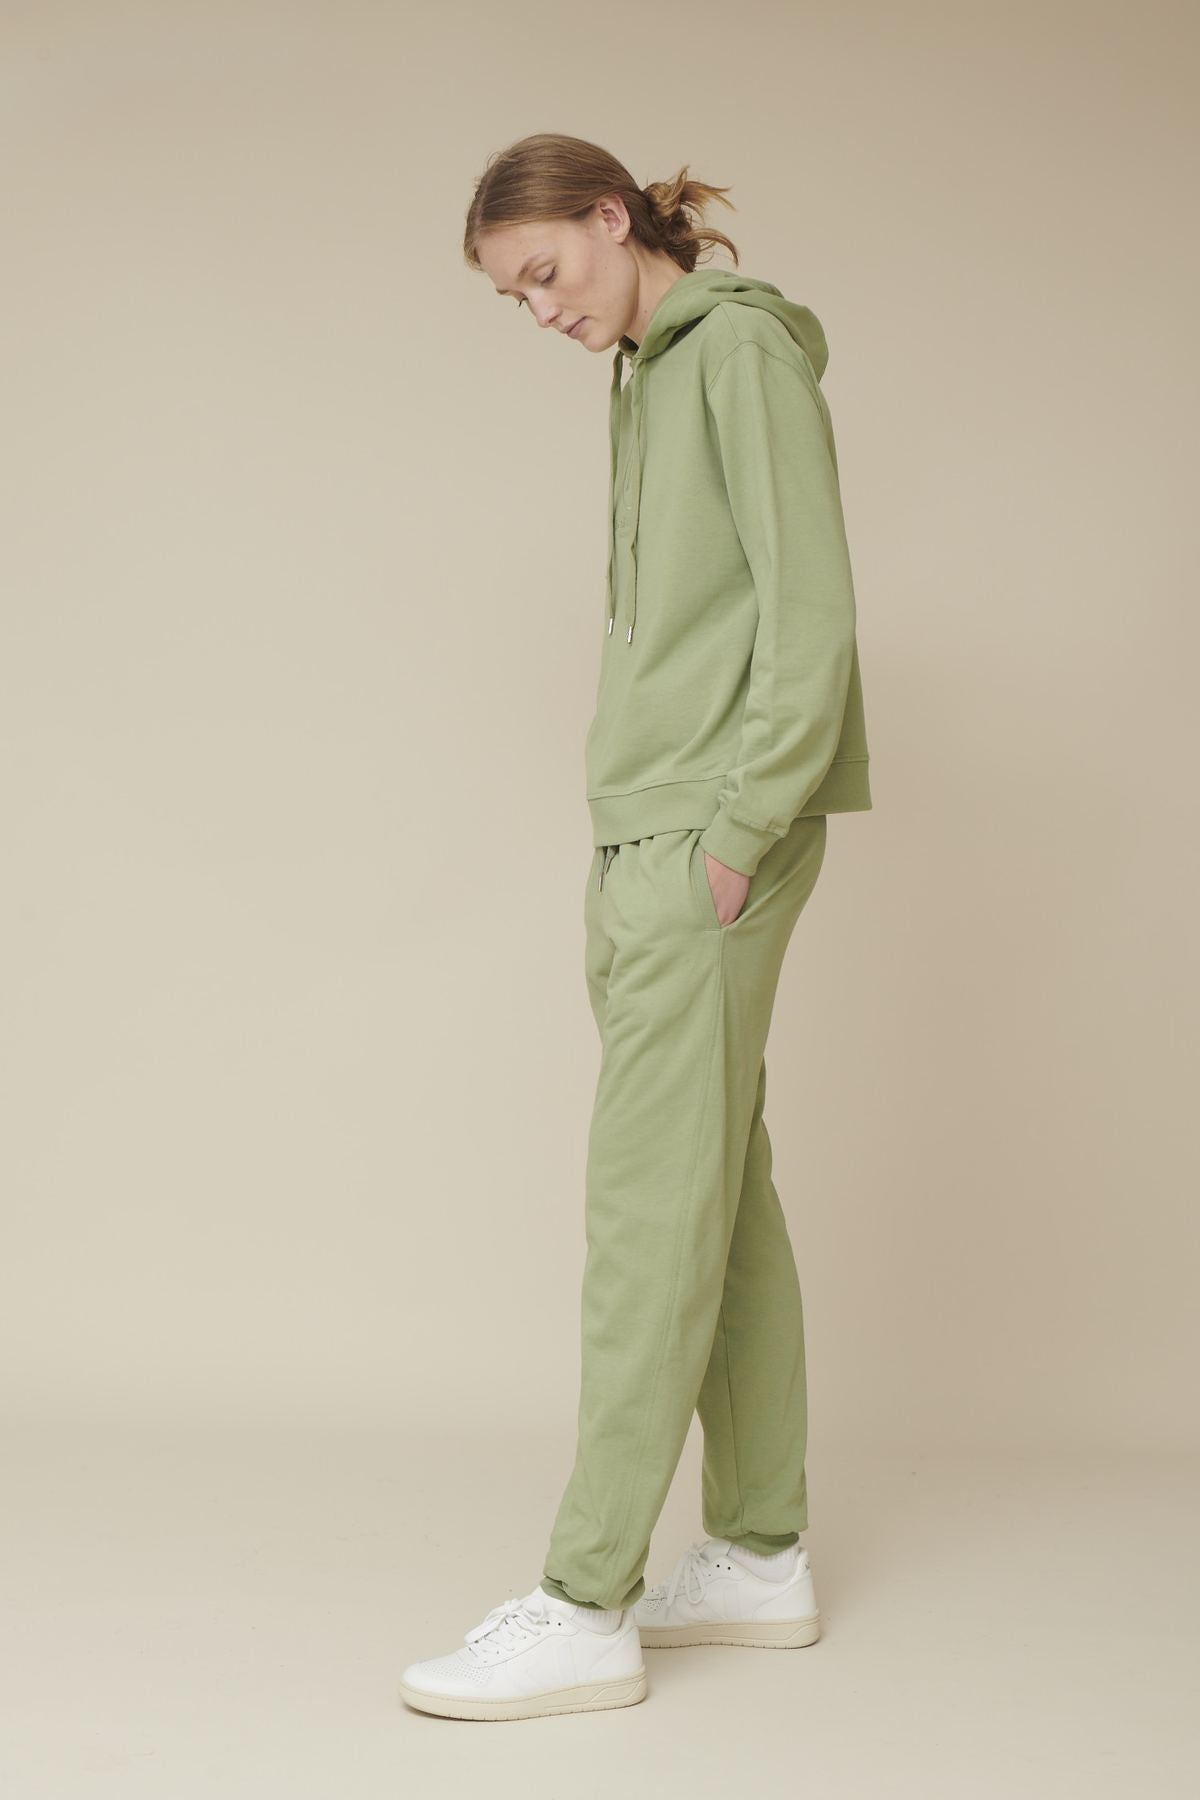 Basic Apparel // Maje sweatpants - oil green